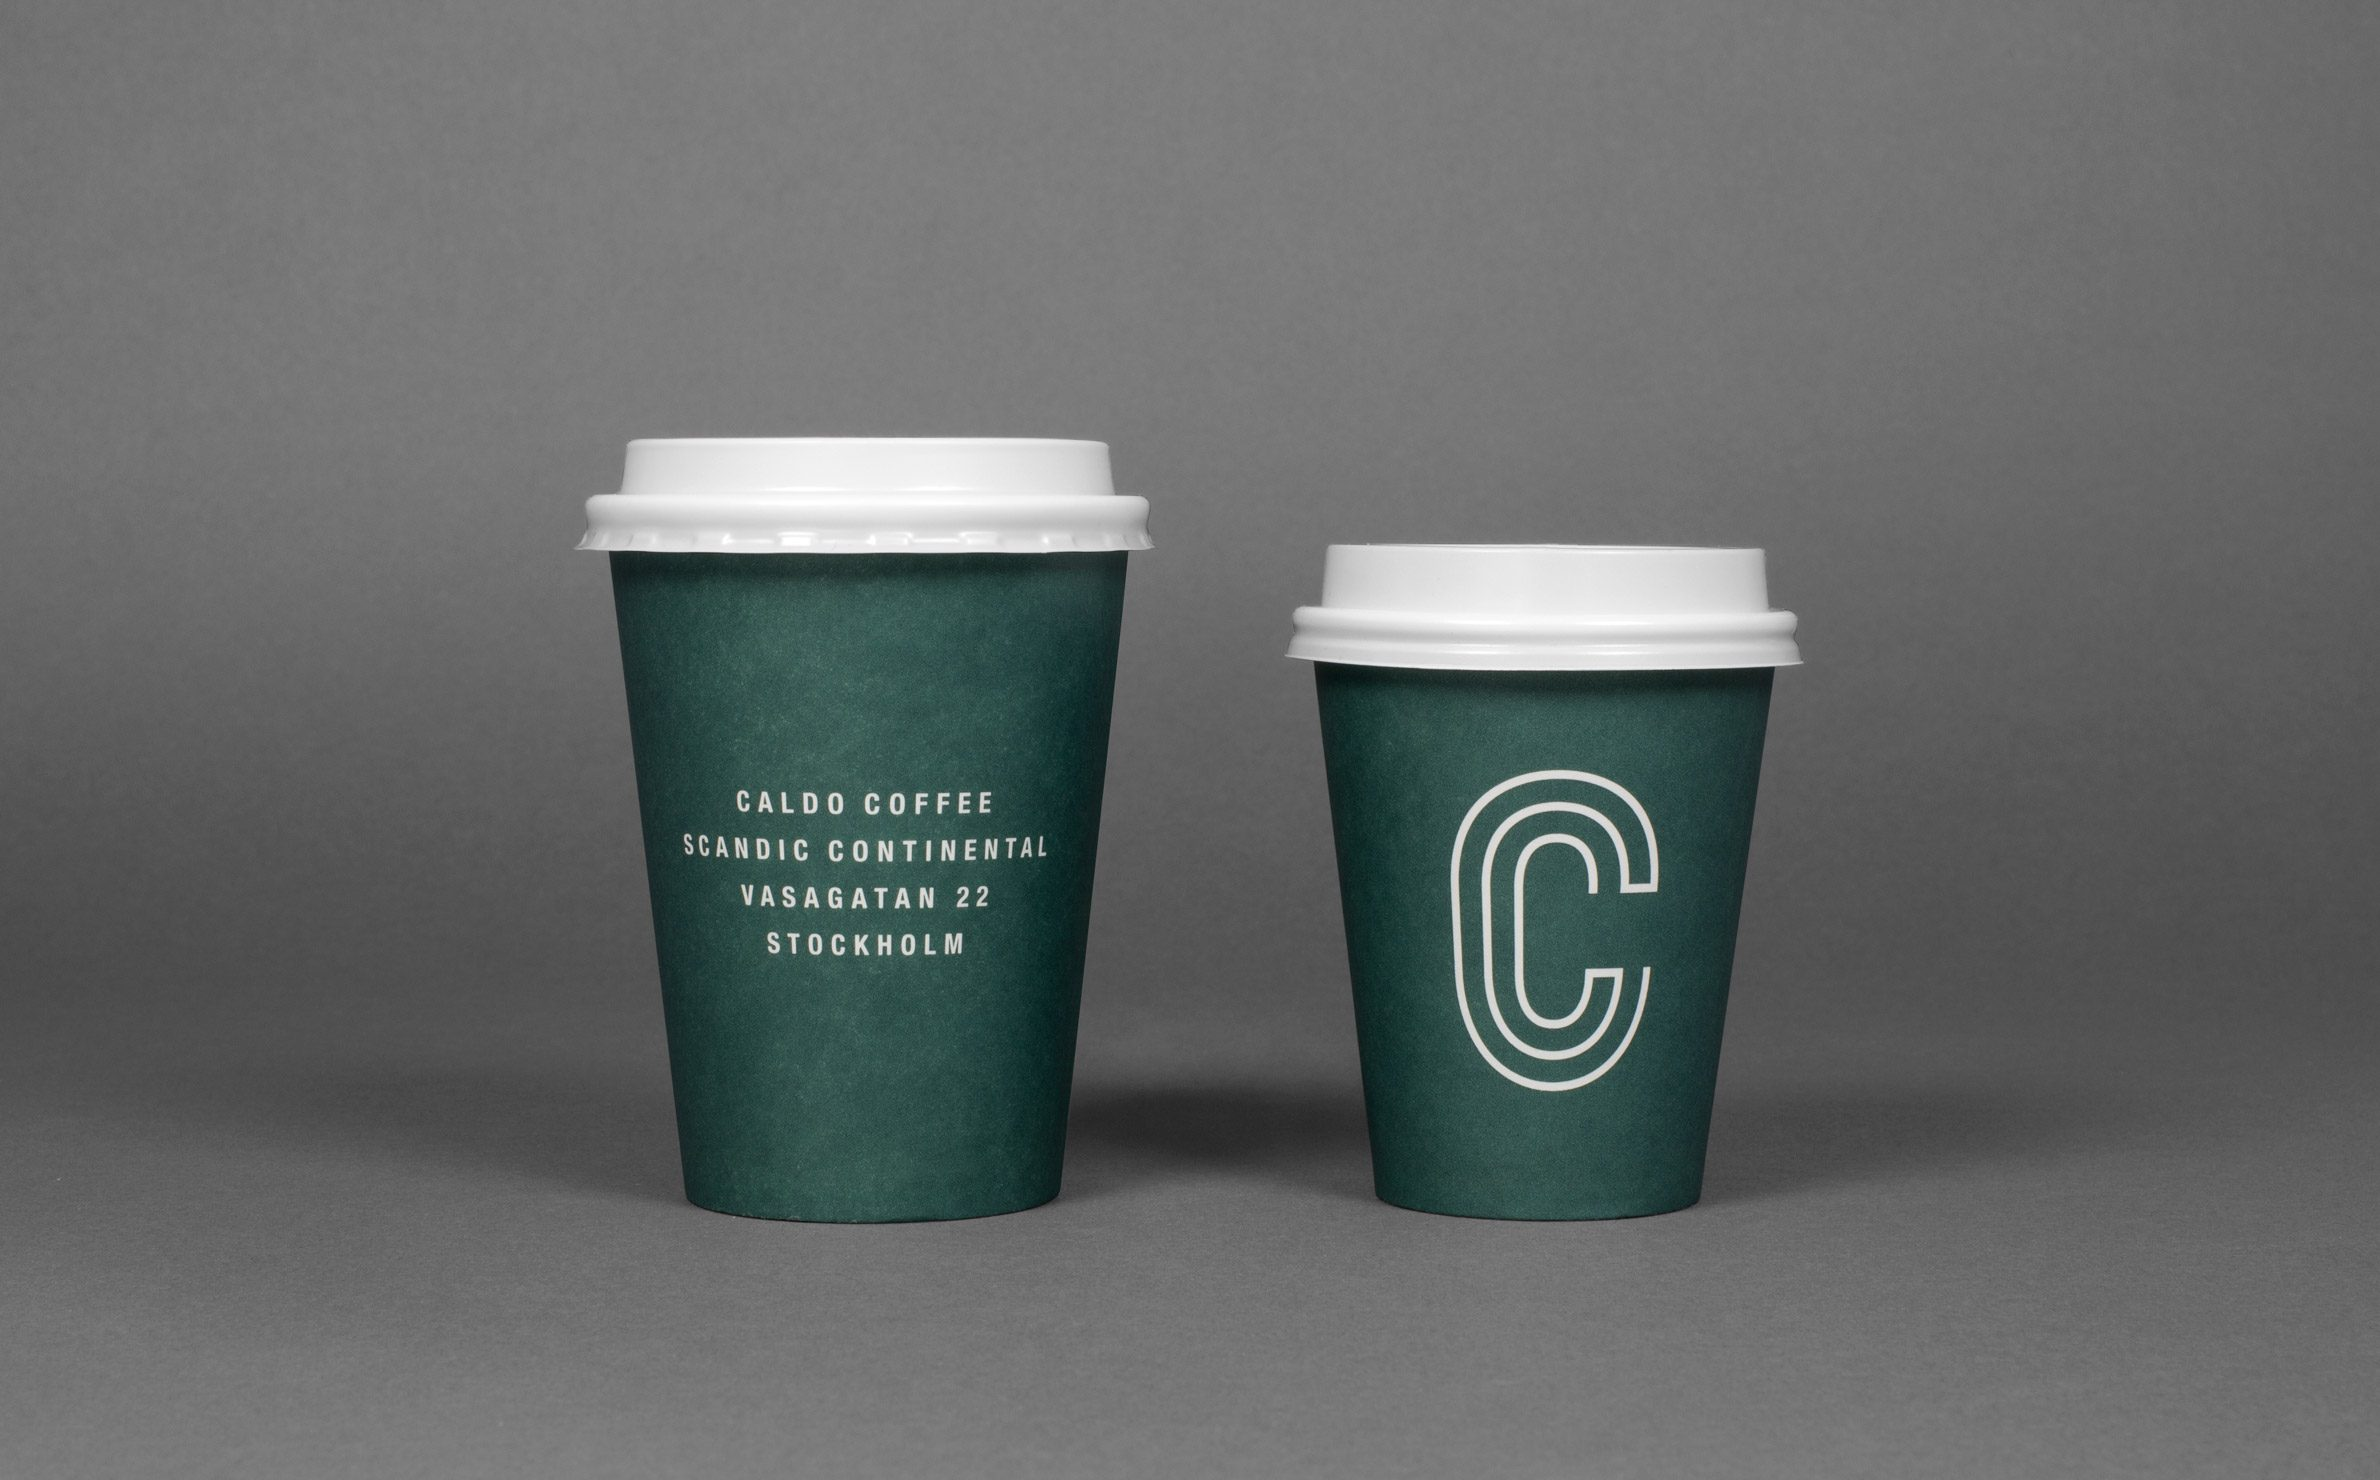 Logo, packaging and signage designed by 25ah for Stockholm cafe Caldo Coffee at the Scandic Continental